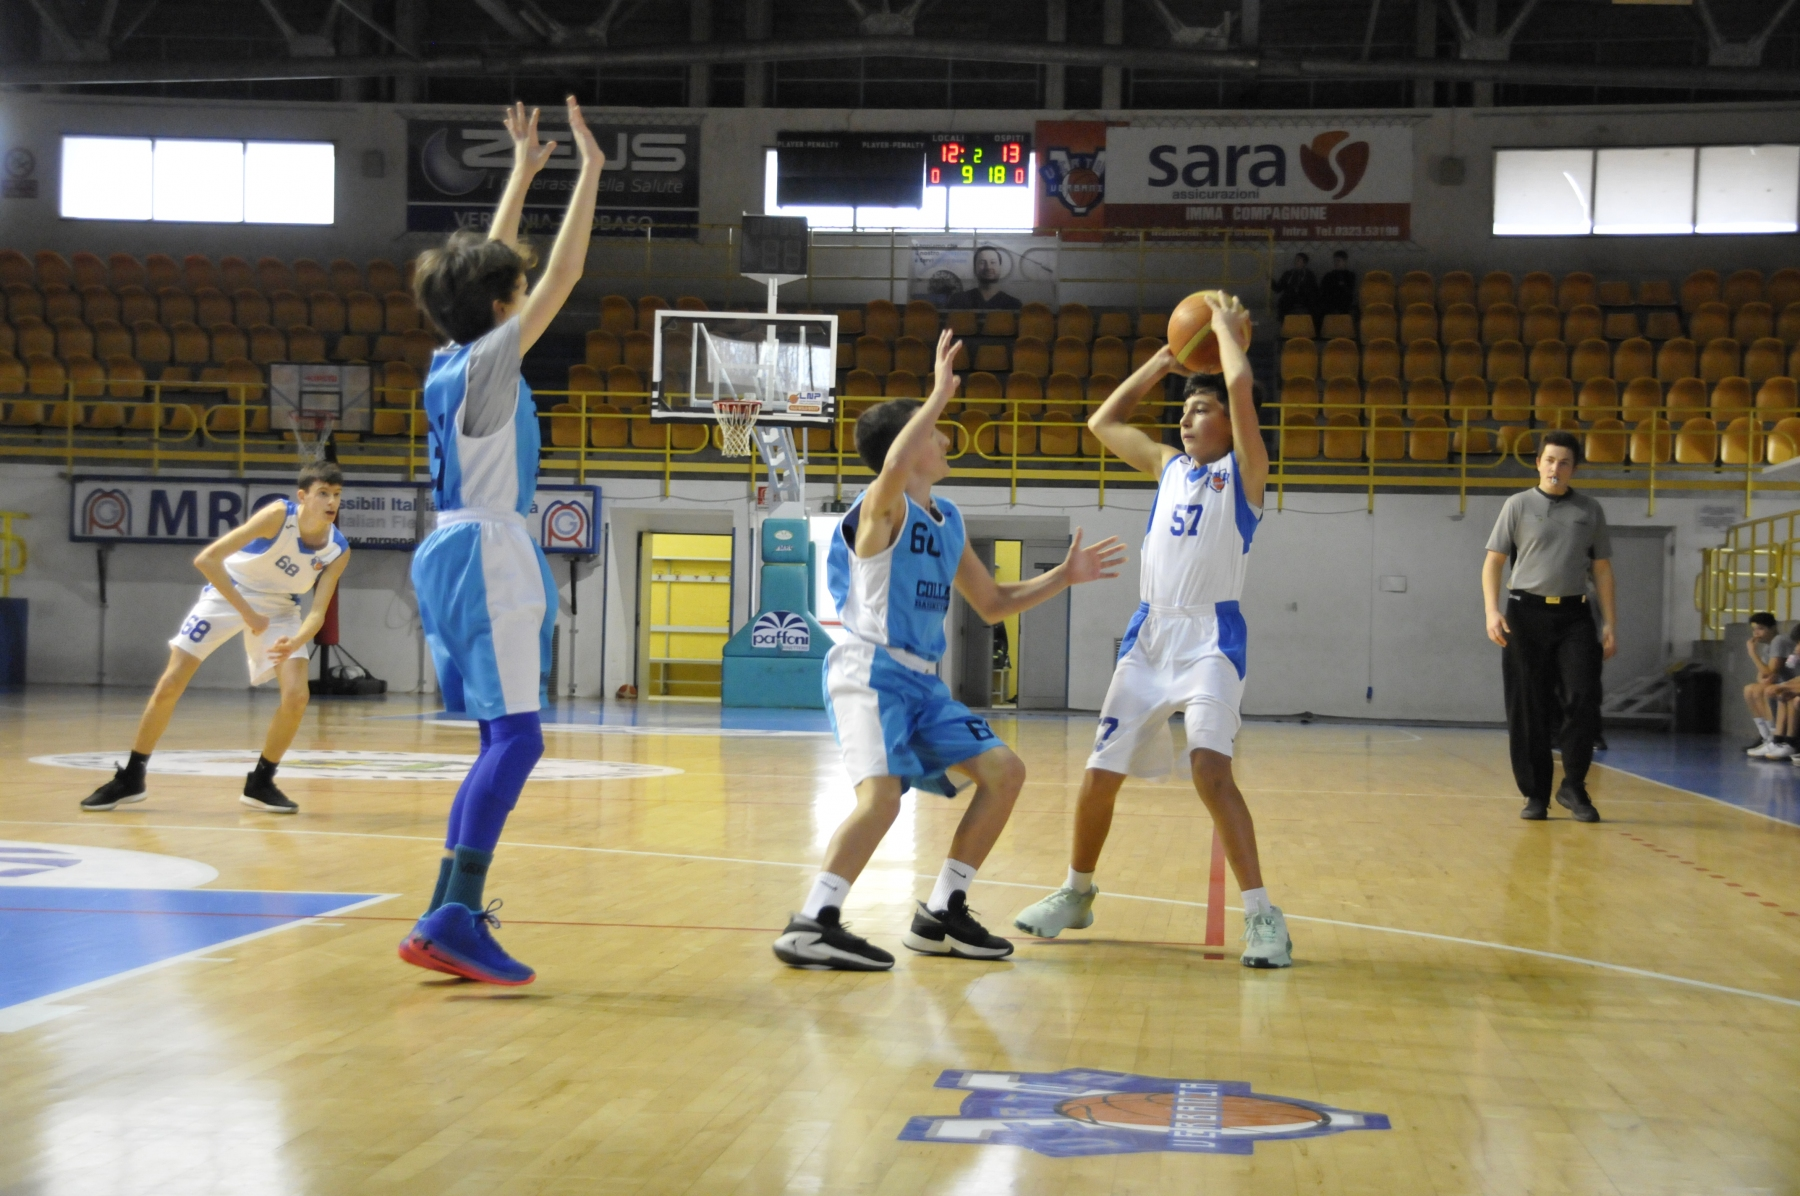 Virtus-College-U13-2020-01-25_016